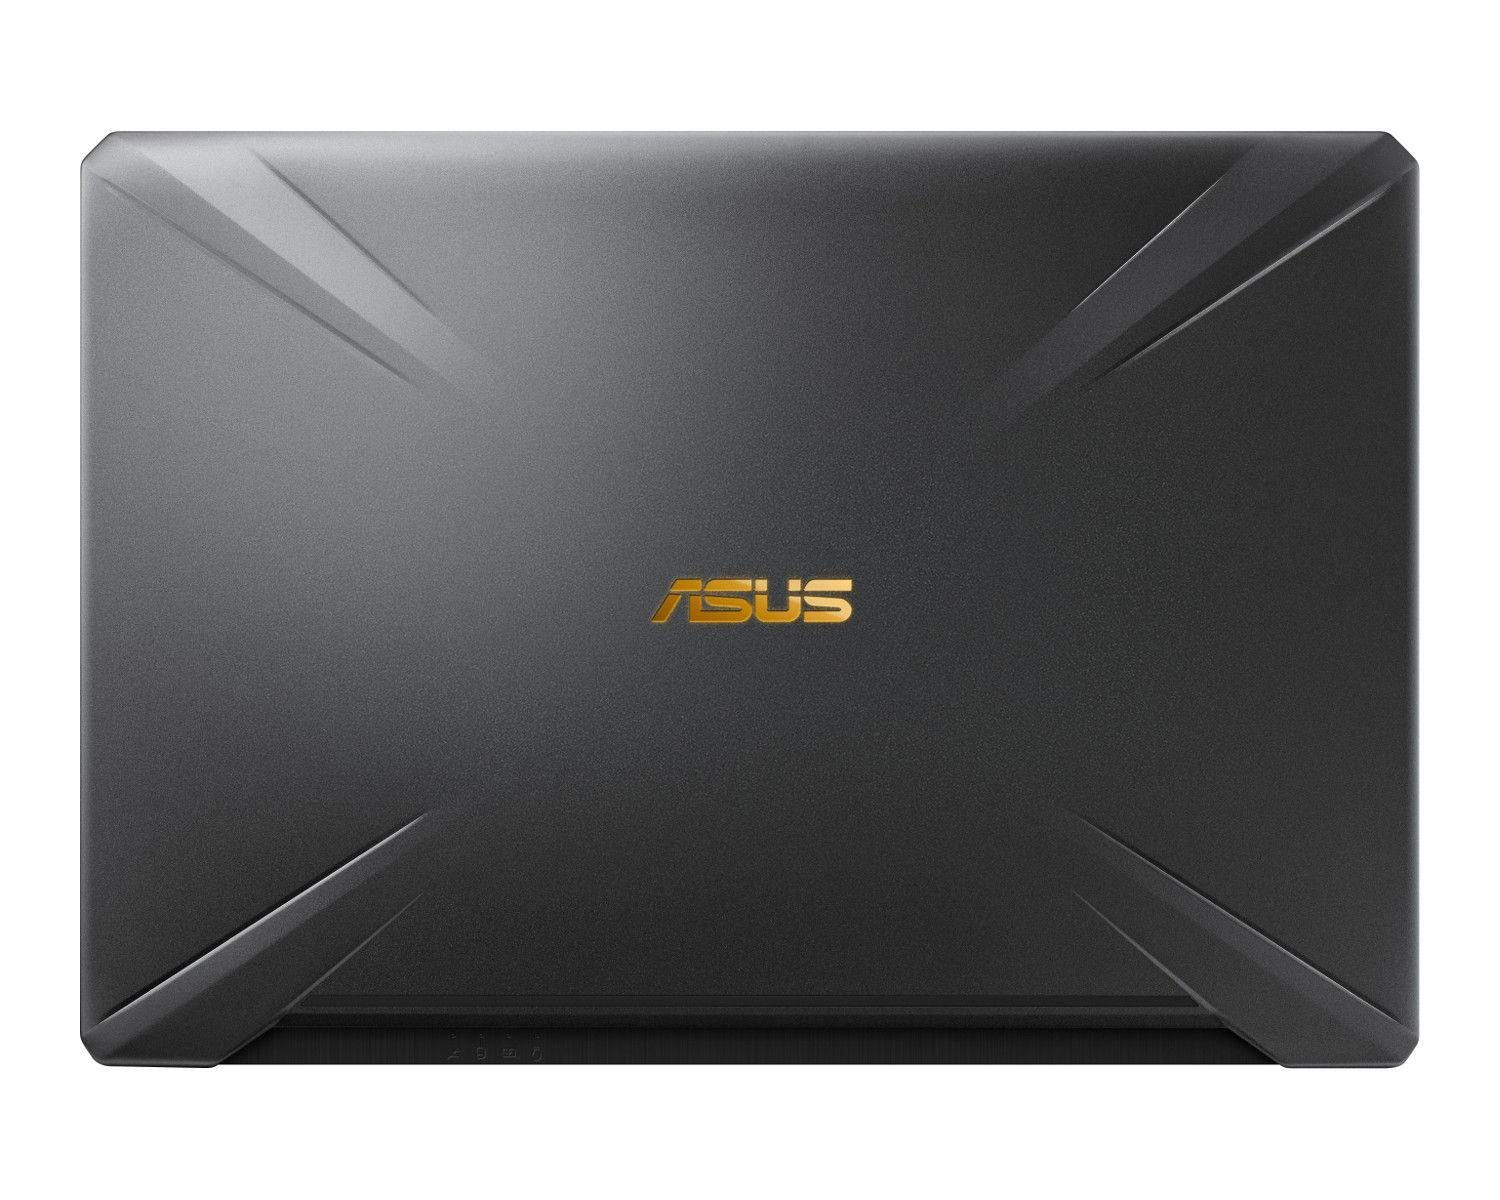 Ordinateur portable Asus TUF 765GM-EV149T Noir/Gold - GTX 1060 144 Hz - photo 8